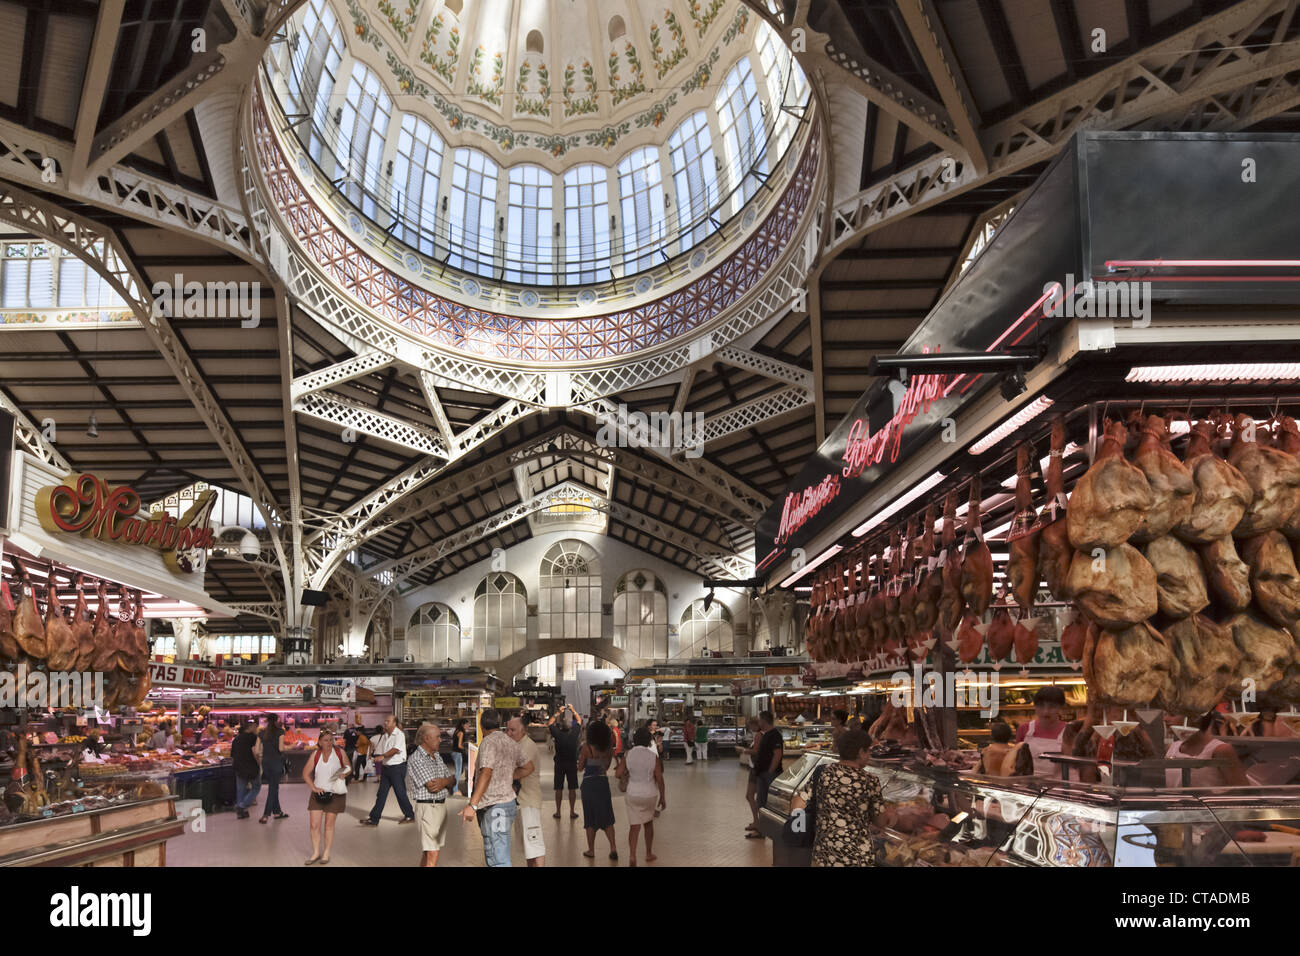 Art nouveau ceiling at central market hall Mercado Central, Valencia Stock Ph...